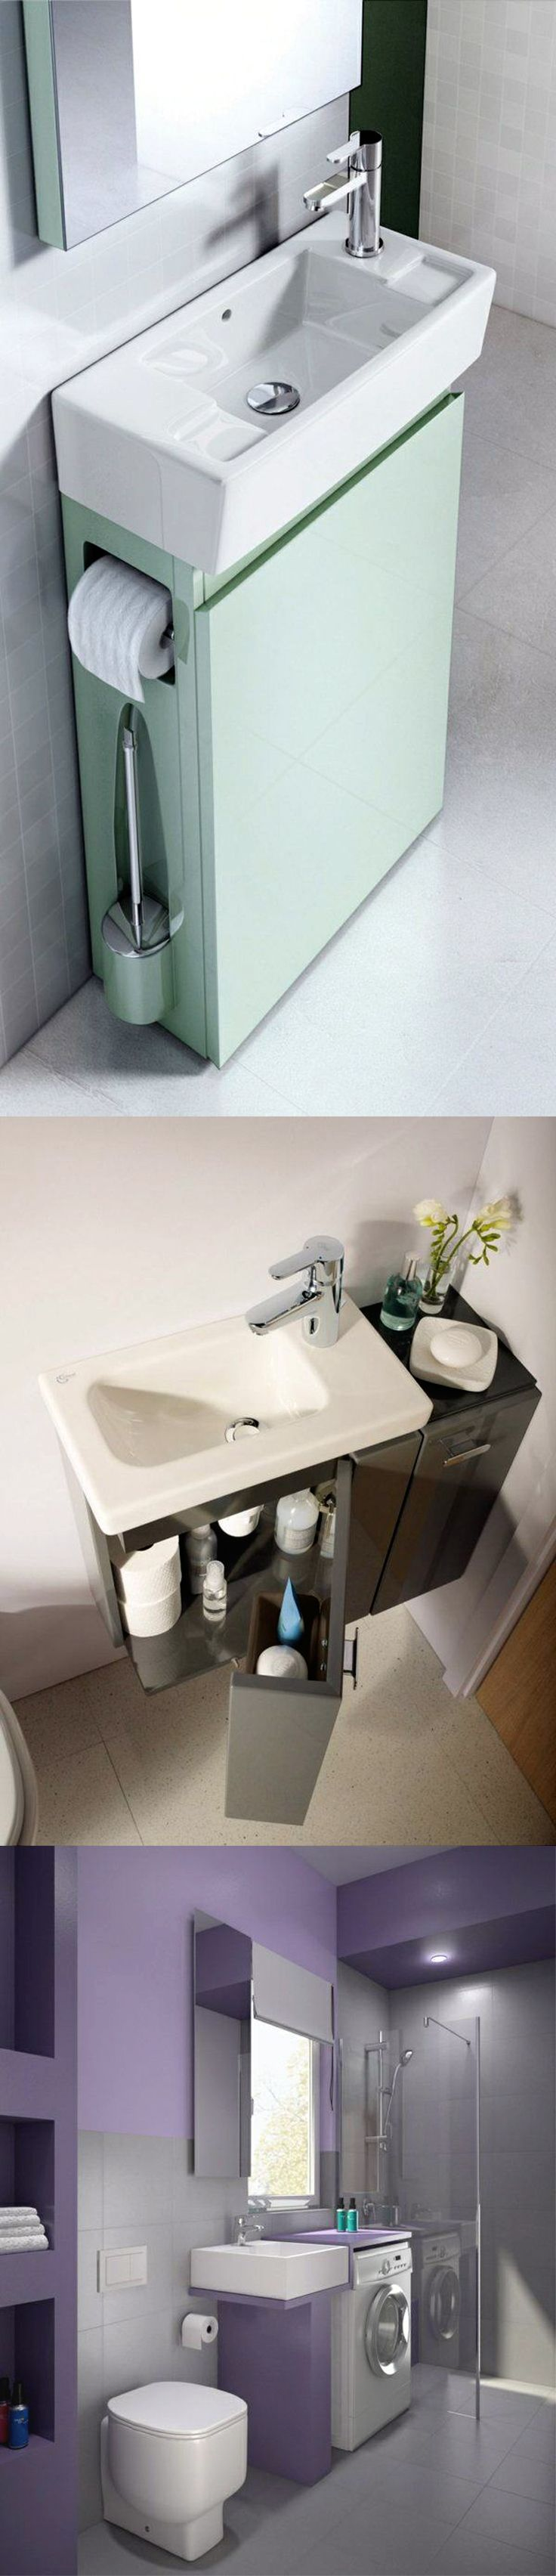 Kleine Badezimmer Unterschränke Small Bathroom Ideas Space Saving Modern Bathroom Furniture